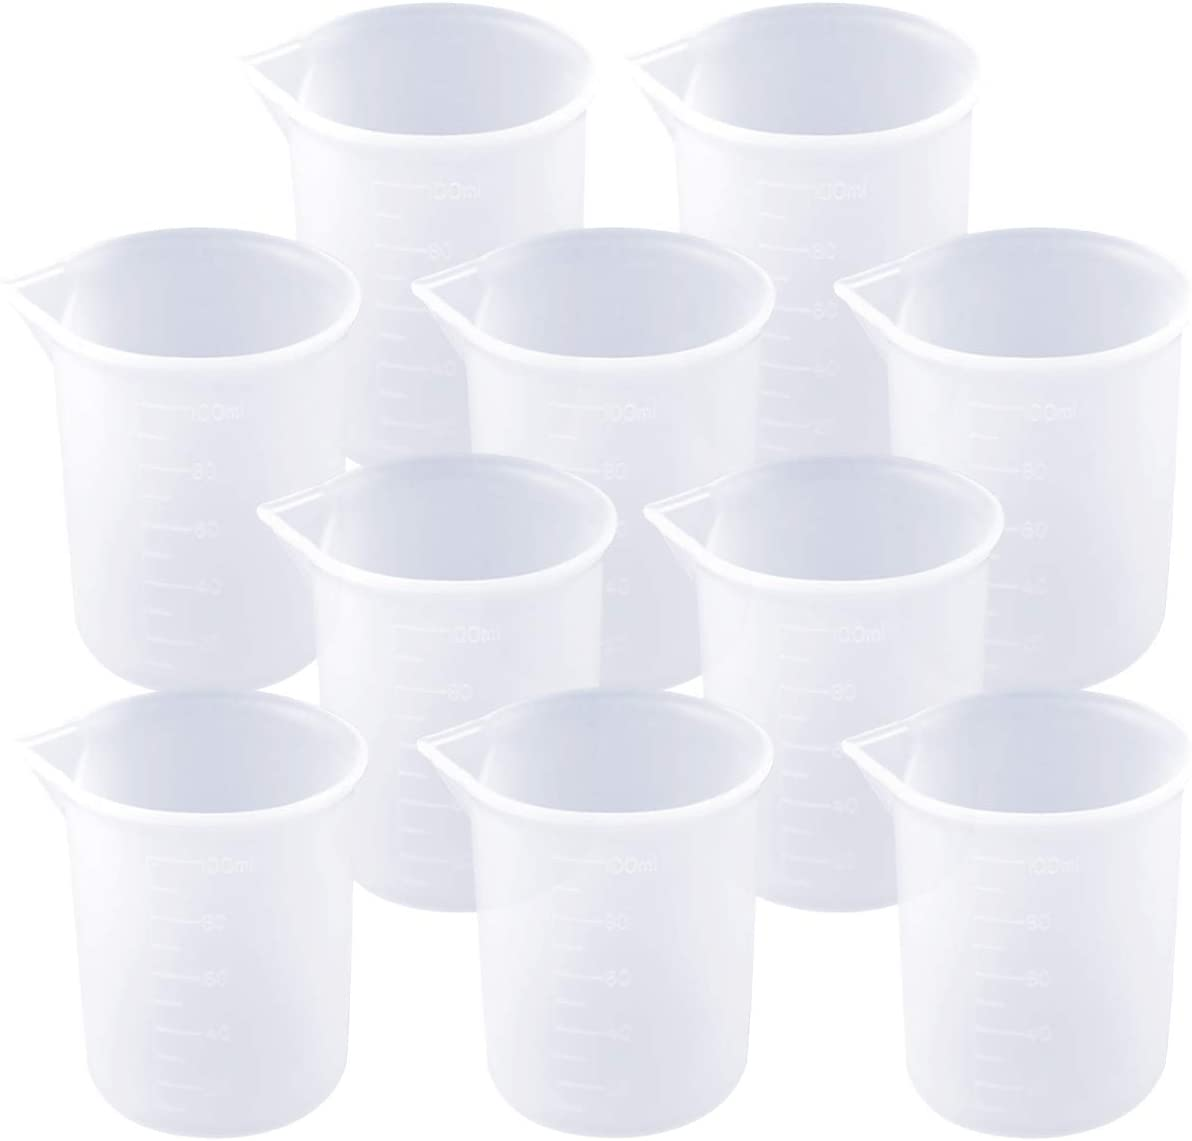 Heatoe 10 Pcs 100 ml Silicone Measuring Cups Epoxy Resin Cups Nonstick Silicone Mixing Cups Resin Glue Tools Cup for Casting Molds, Slime, Art, Waxing, Kitchen, Lab